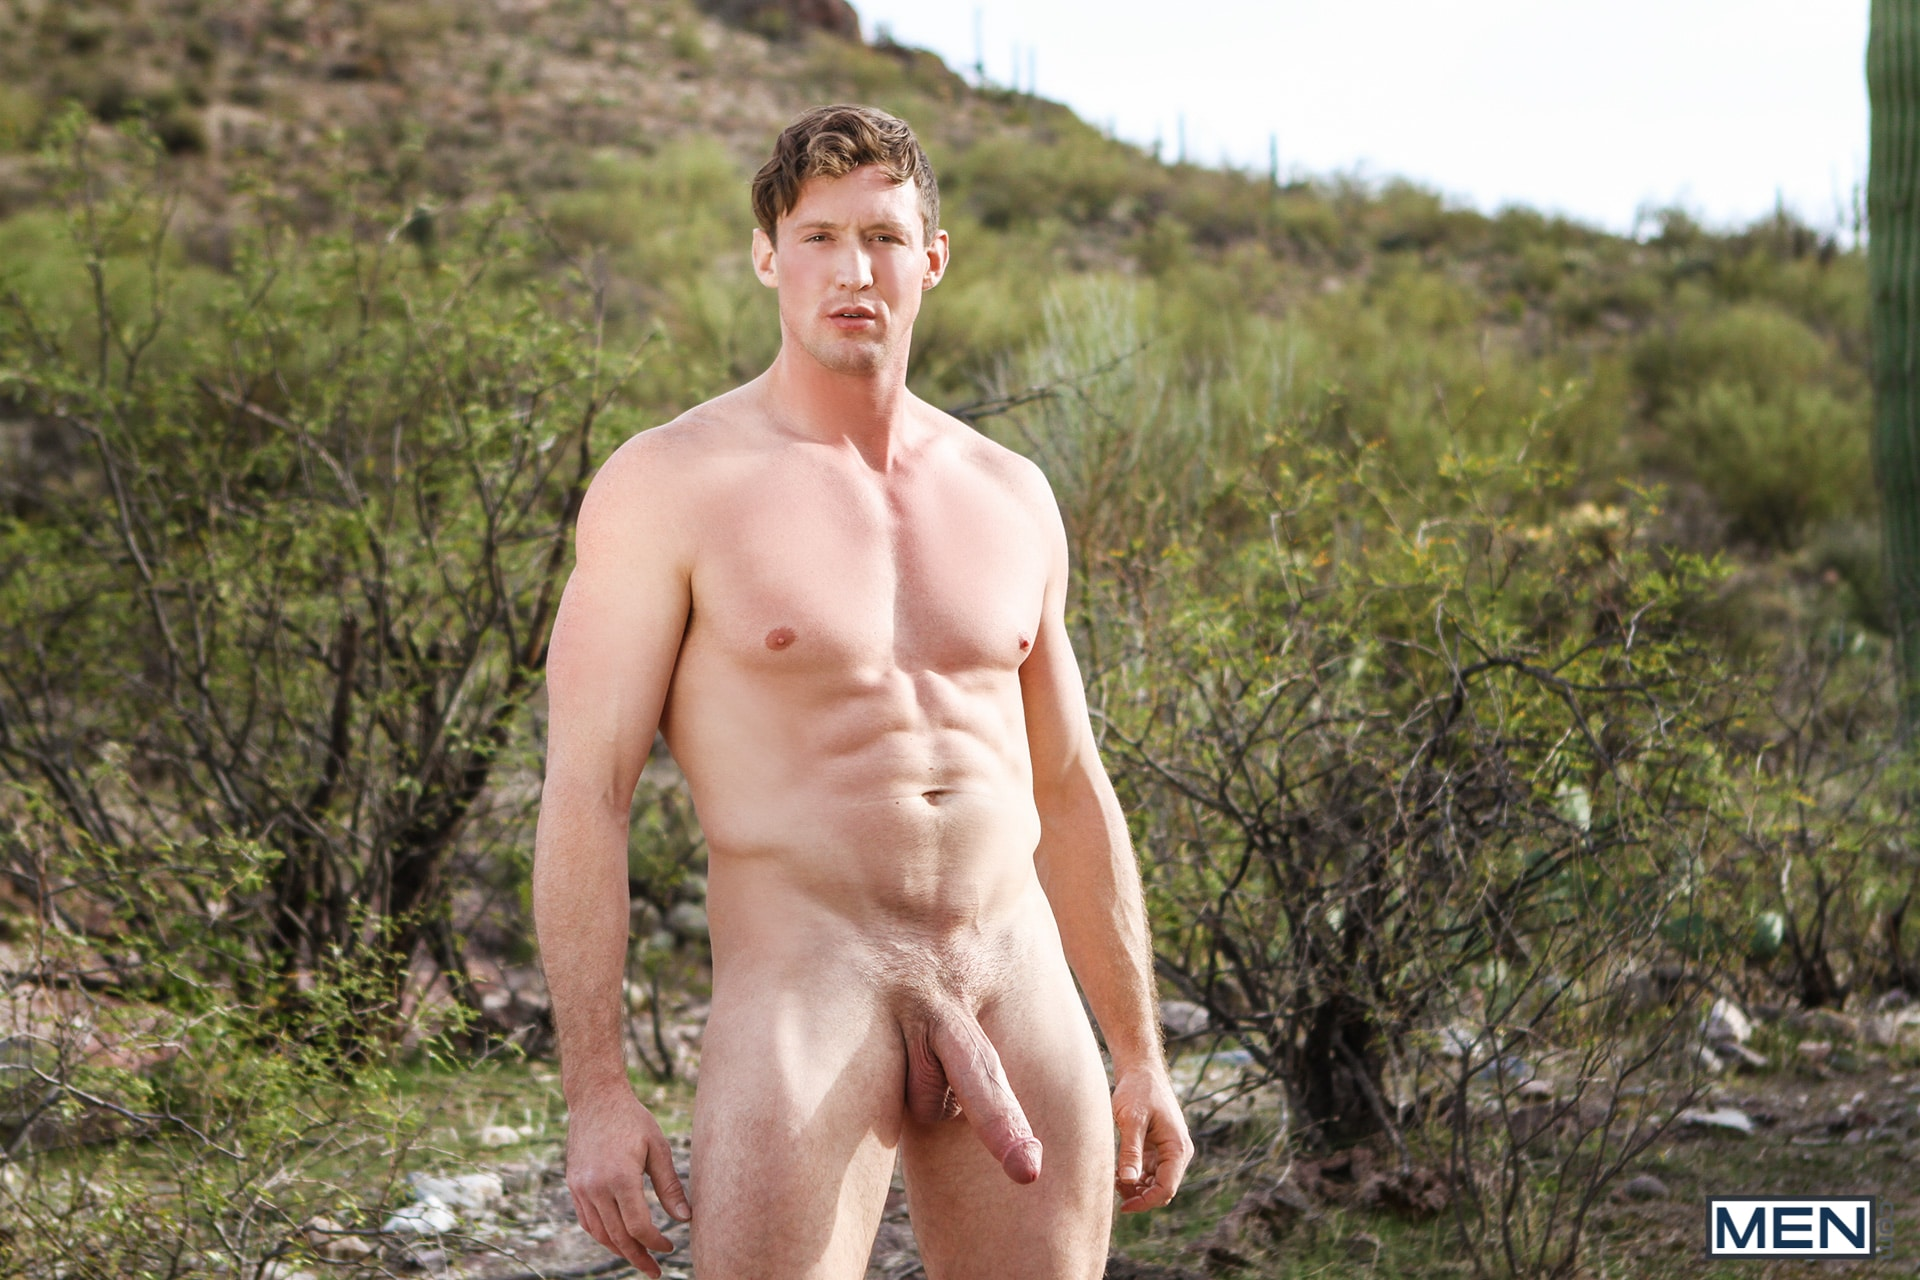 Free adult videos of naturally naked males and men